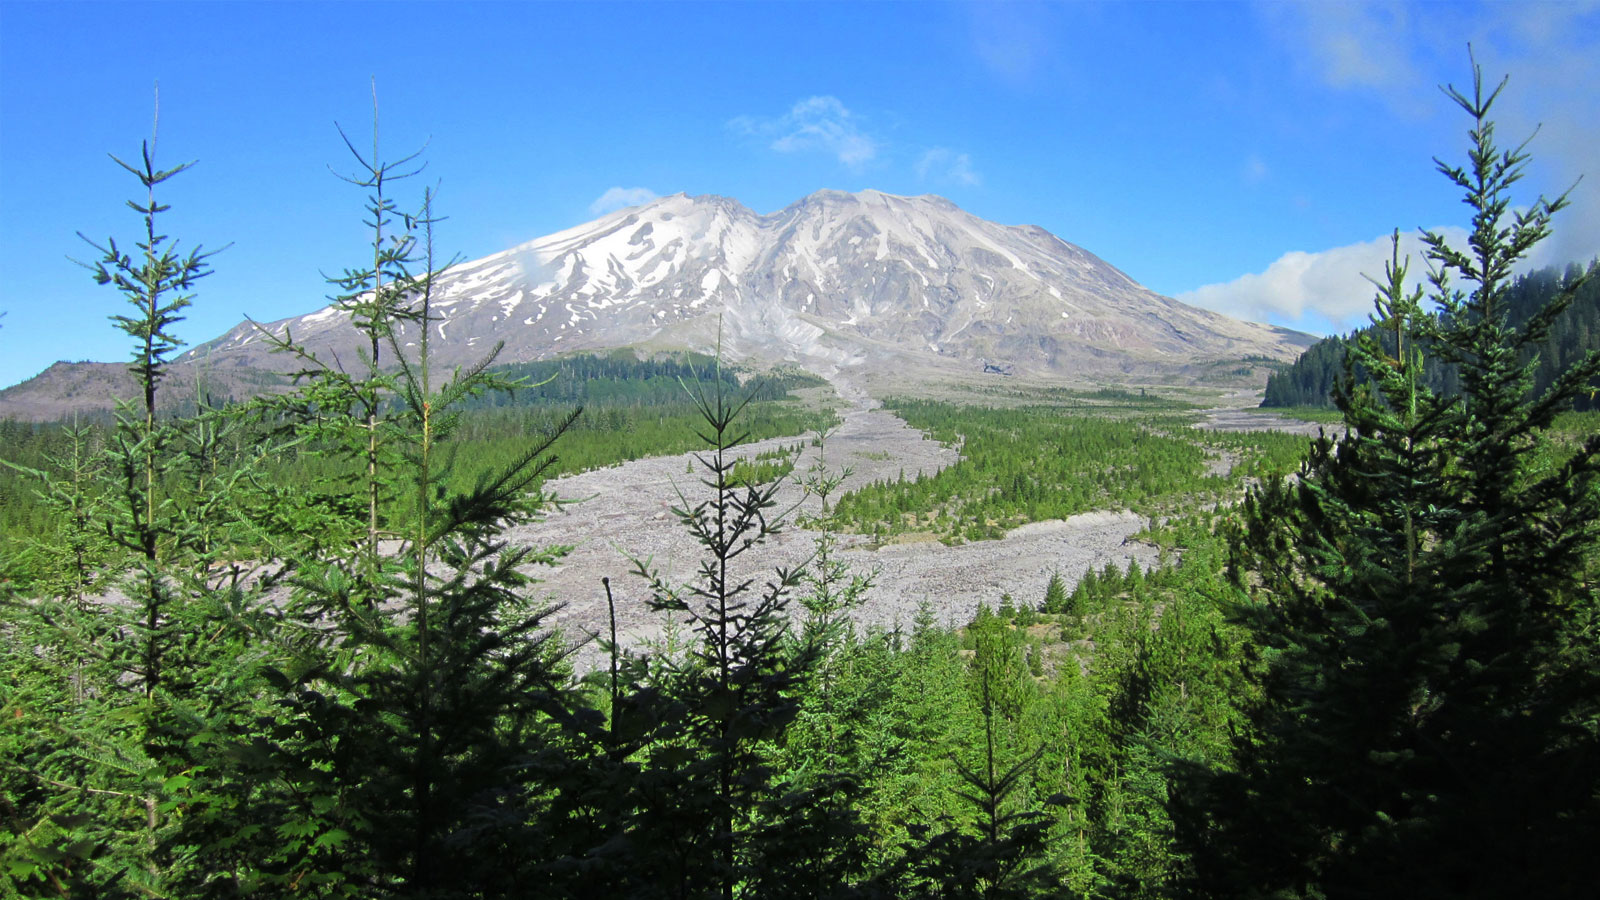 Researchers find evidence for a cold, serpentinized mantle wedge beneath Mt. St. Helens